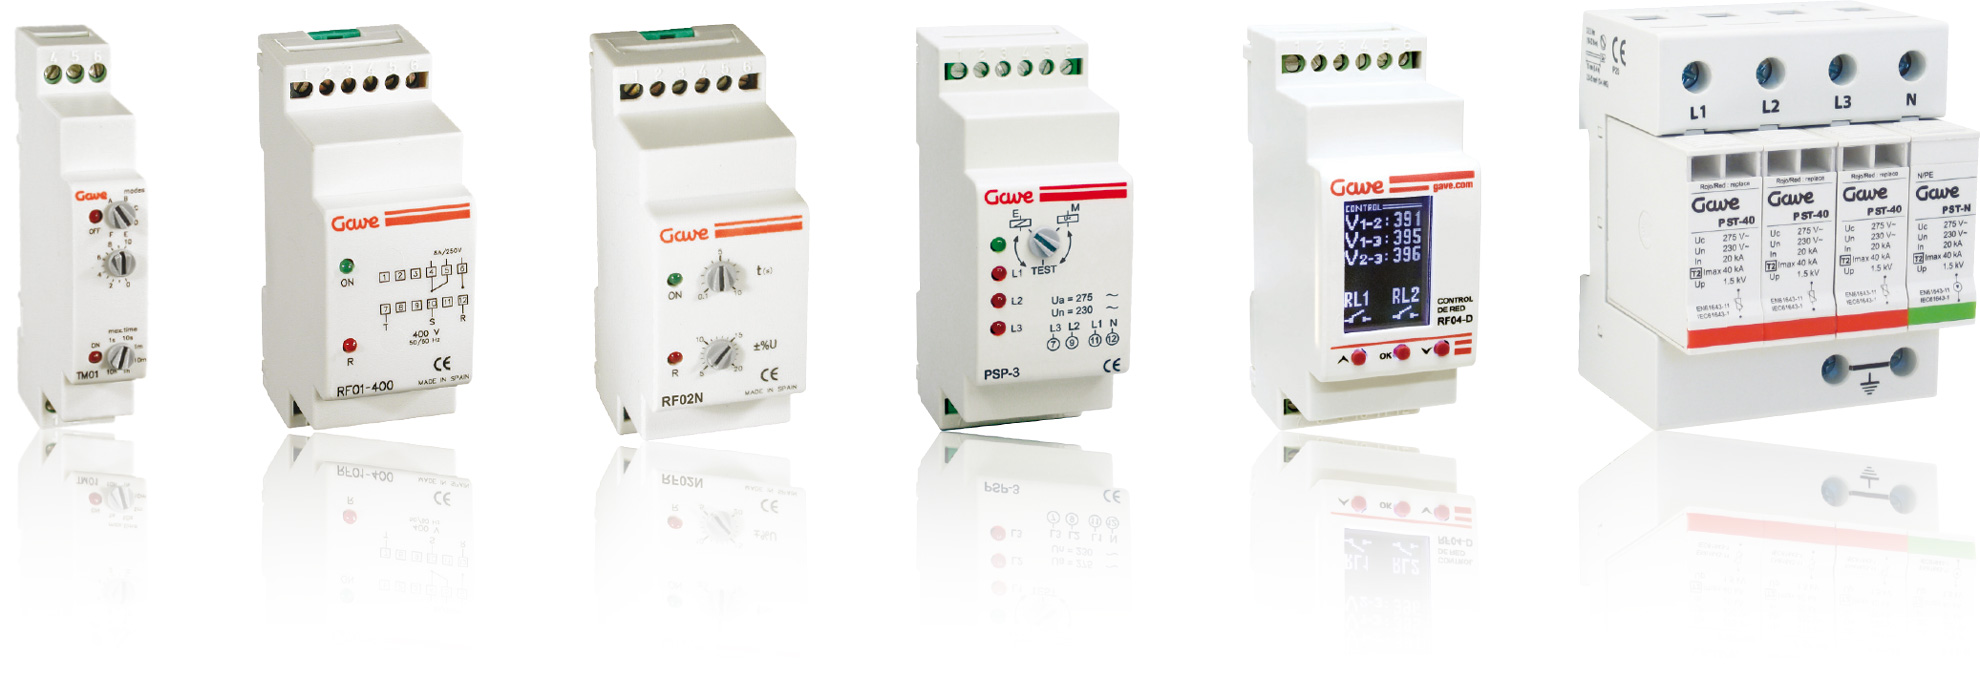 range overview of control relays and protection